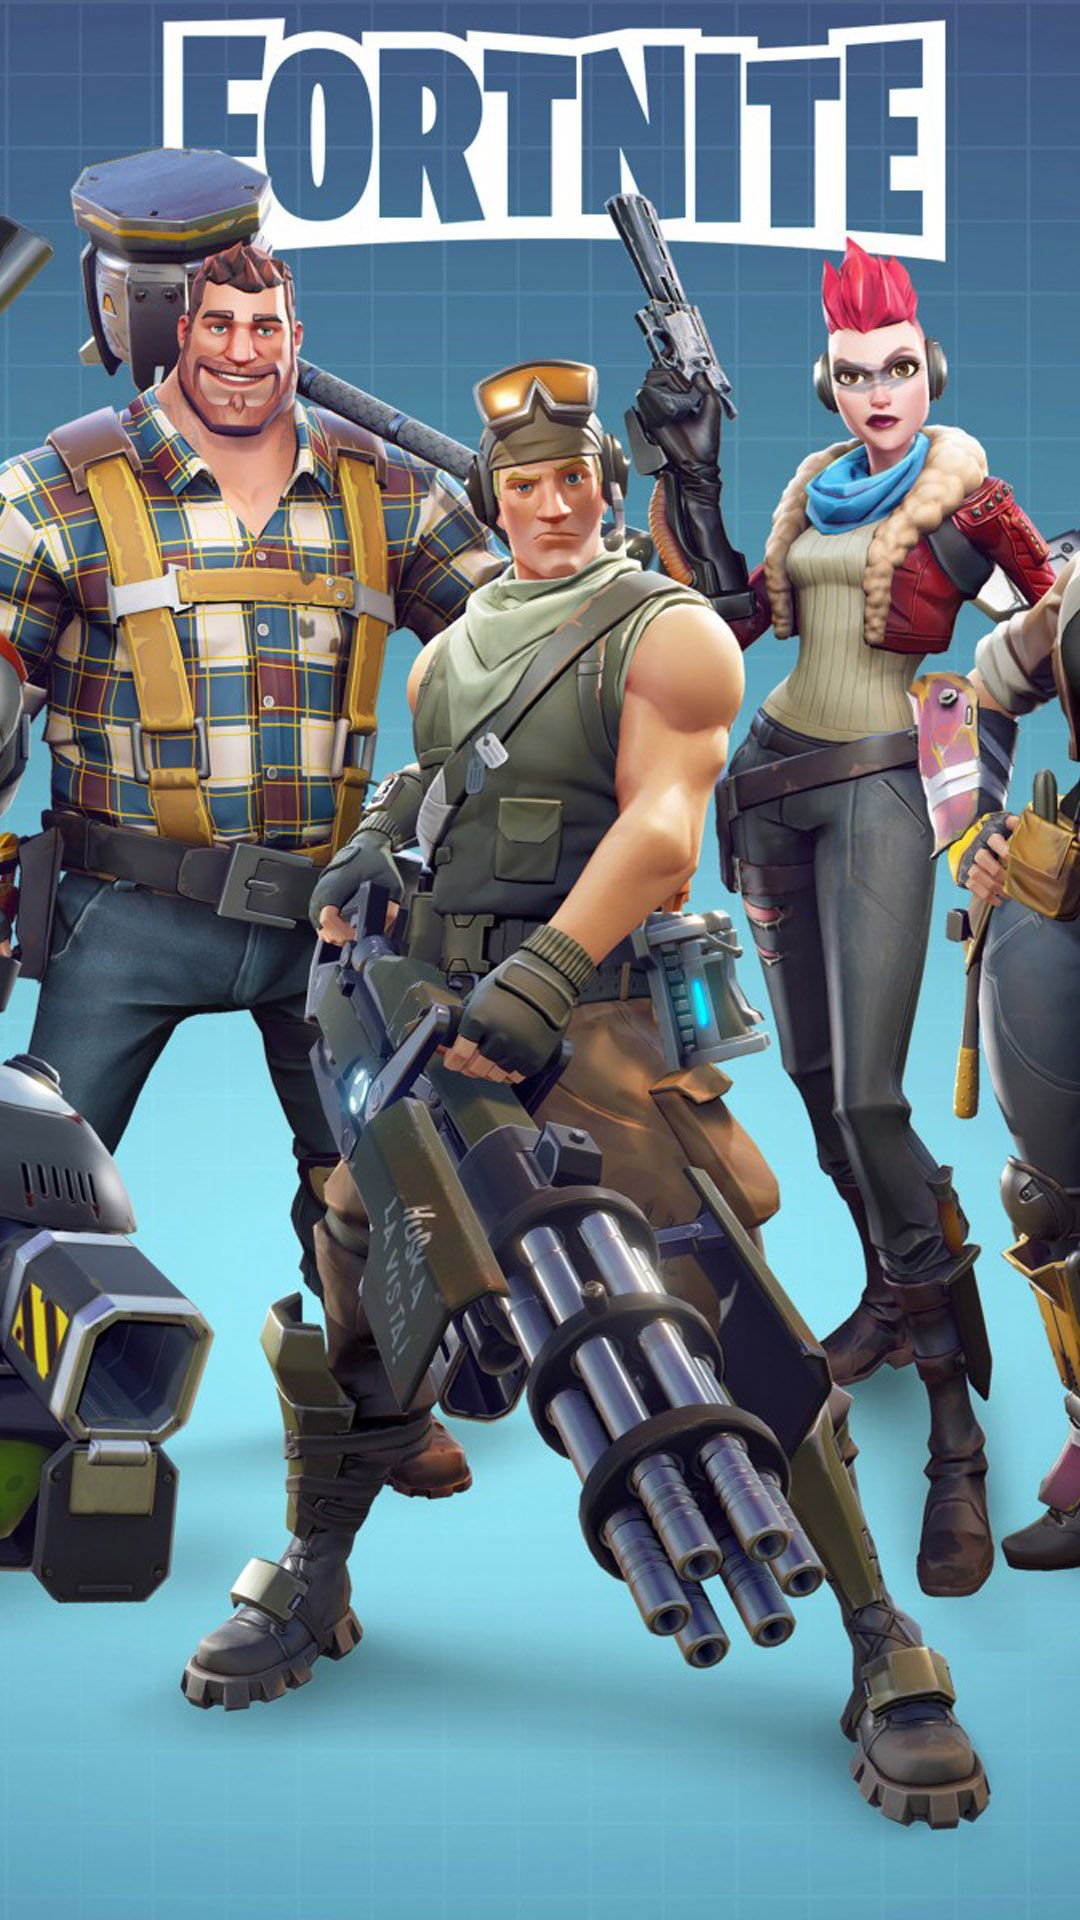 Fortnite Battle Royale 4k Ultra Hd Mobile Wallpaper Hd Wallpaper Android Hd Phone Backgrounds Android Wallpaper 4k